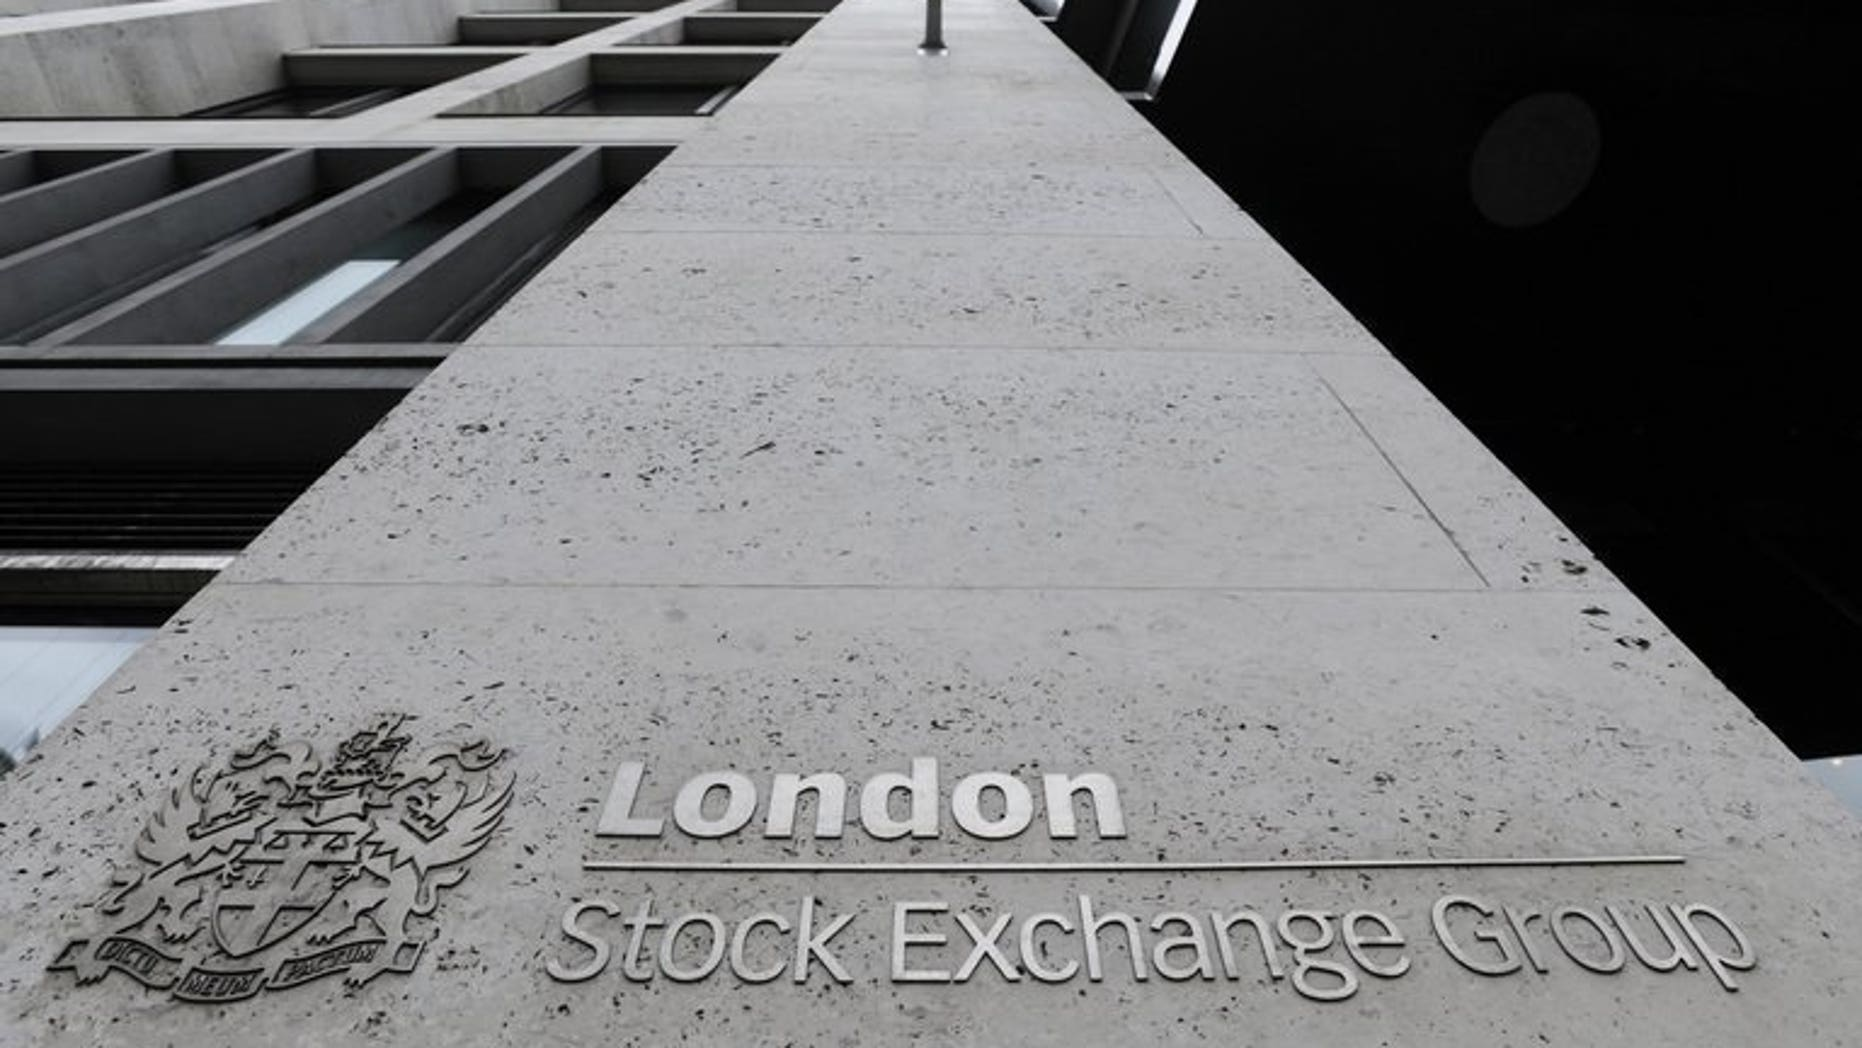 View of the entrance to the London Stock Exchange, on September 22, 2011. London equities drifted higher at the start of trading on Monday, as dealers digested the outcome of Germany's election over the weekend.